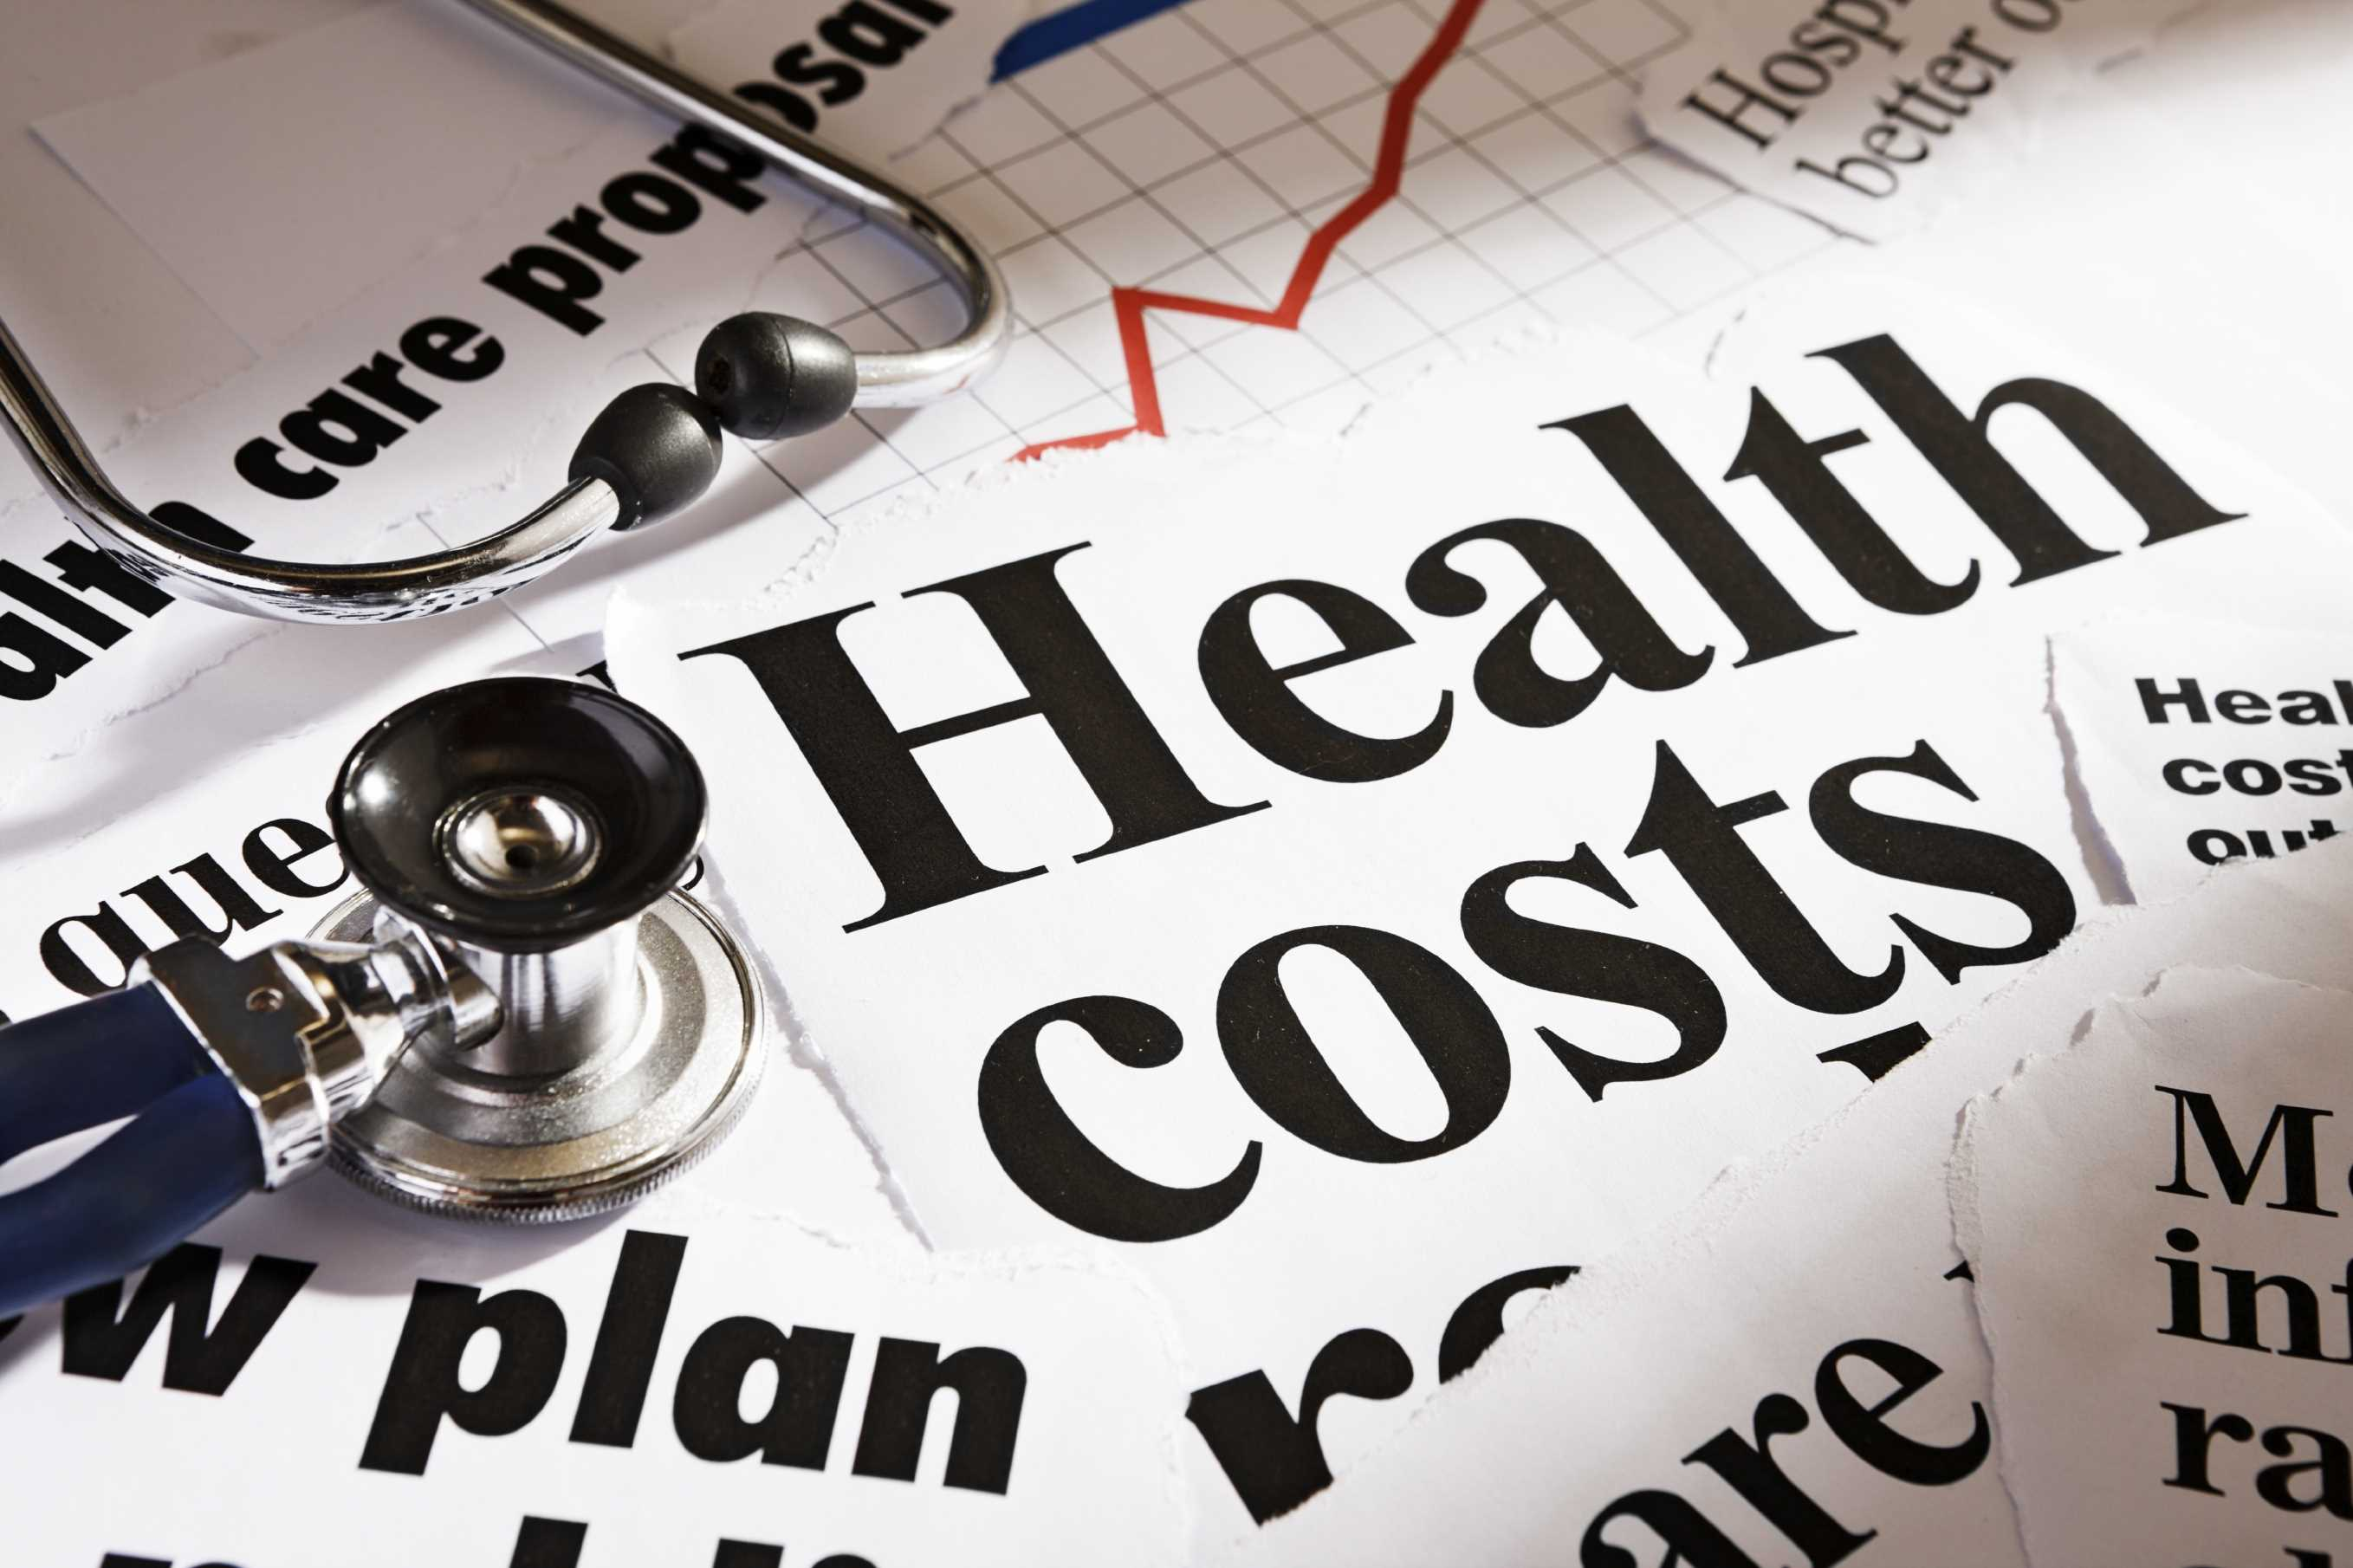 cost conundrum and healthcare